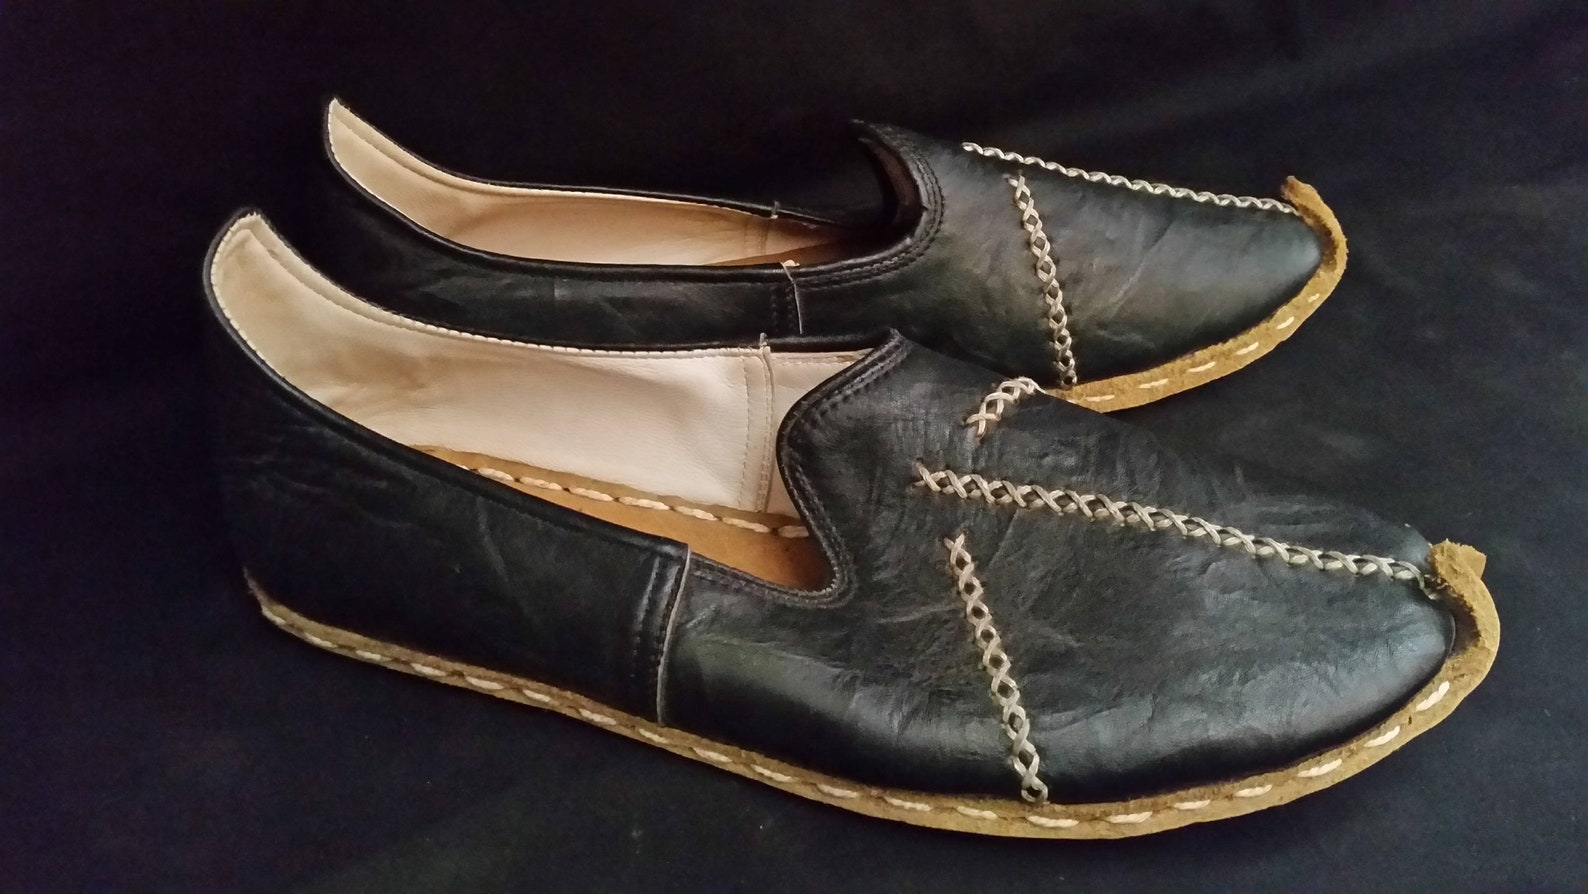 leather summer moccasin | handcrafted | artisans carik | cosplay renaissance faire | ecochic | driving shoe |ballet flat | lady